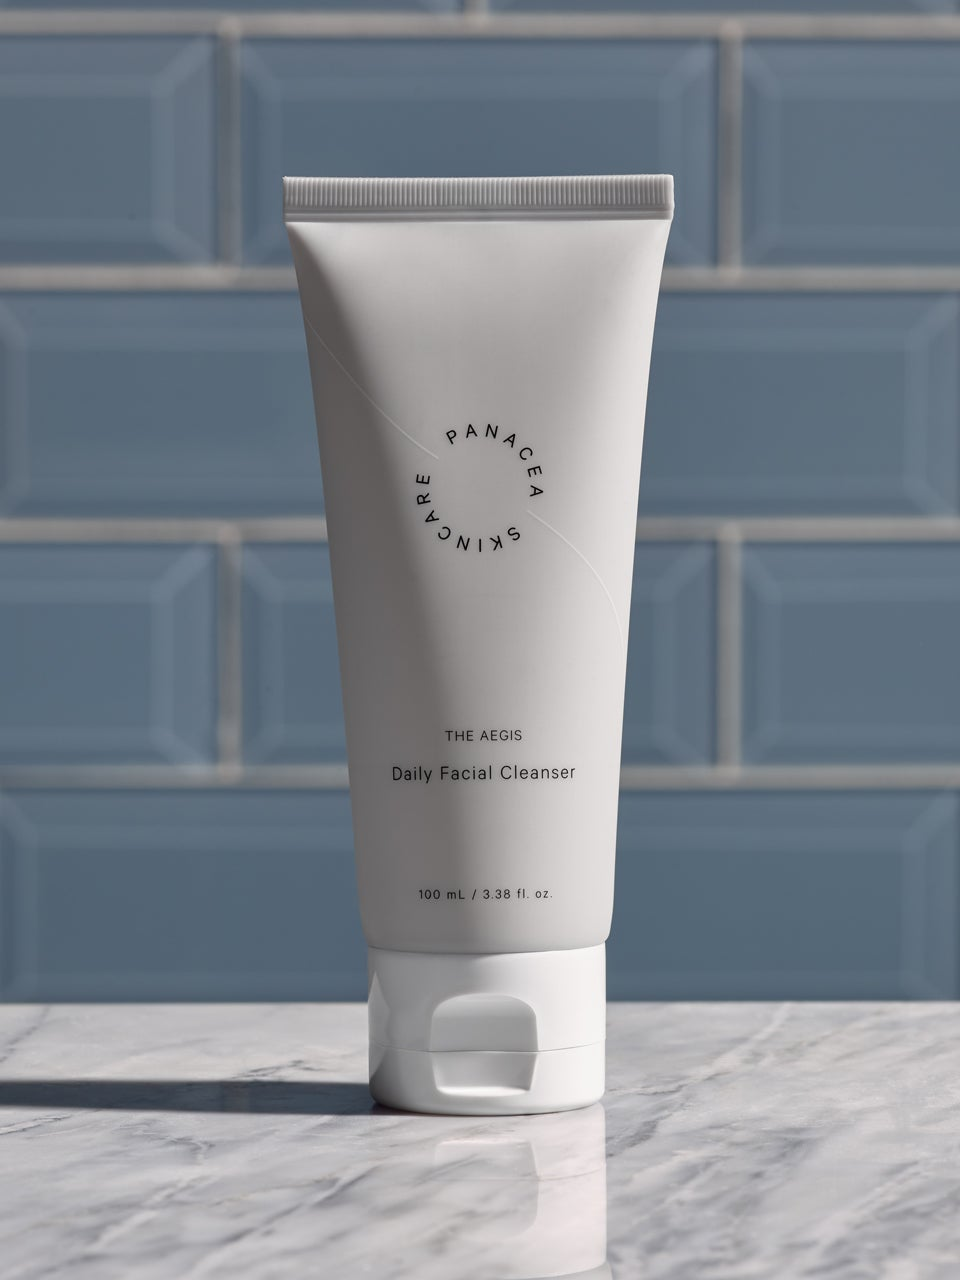 Panacea - Daily Facial Cleanser $24.00